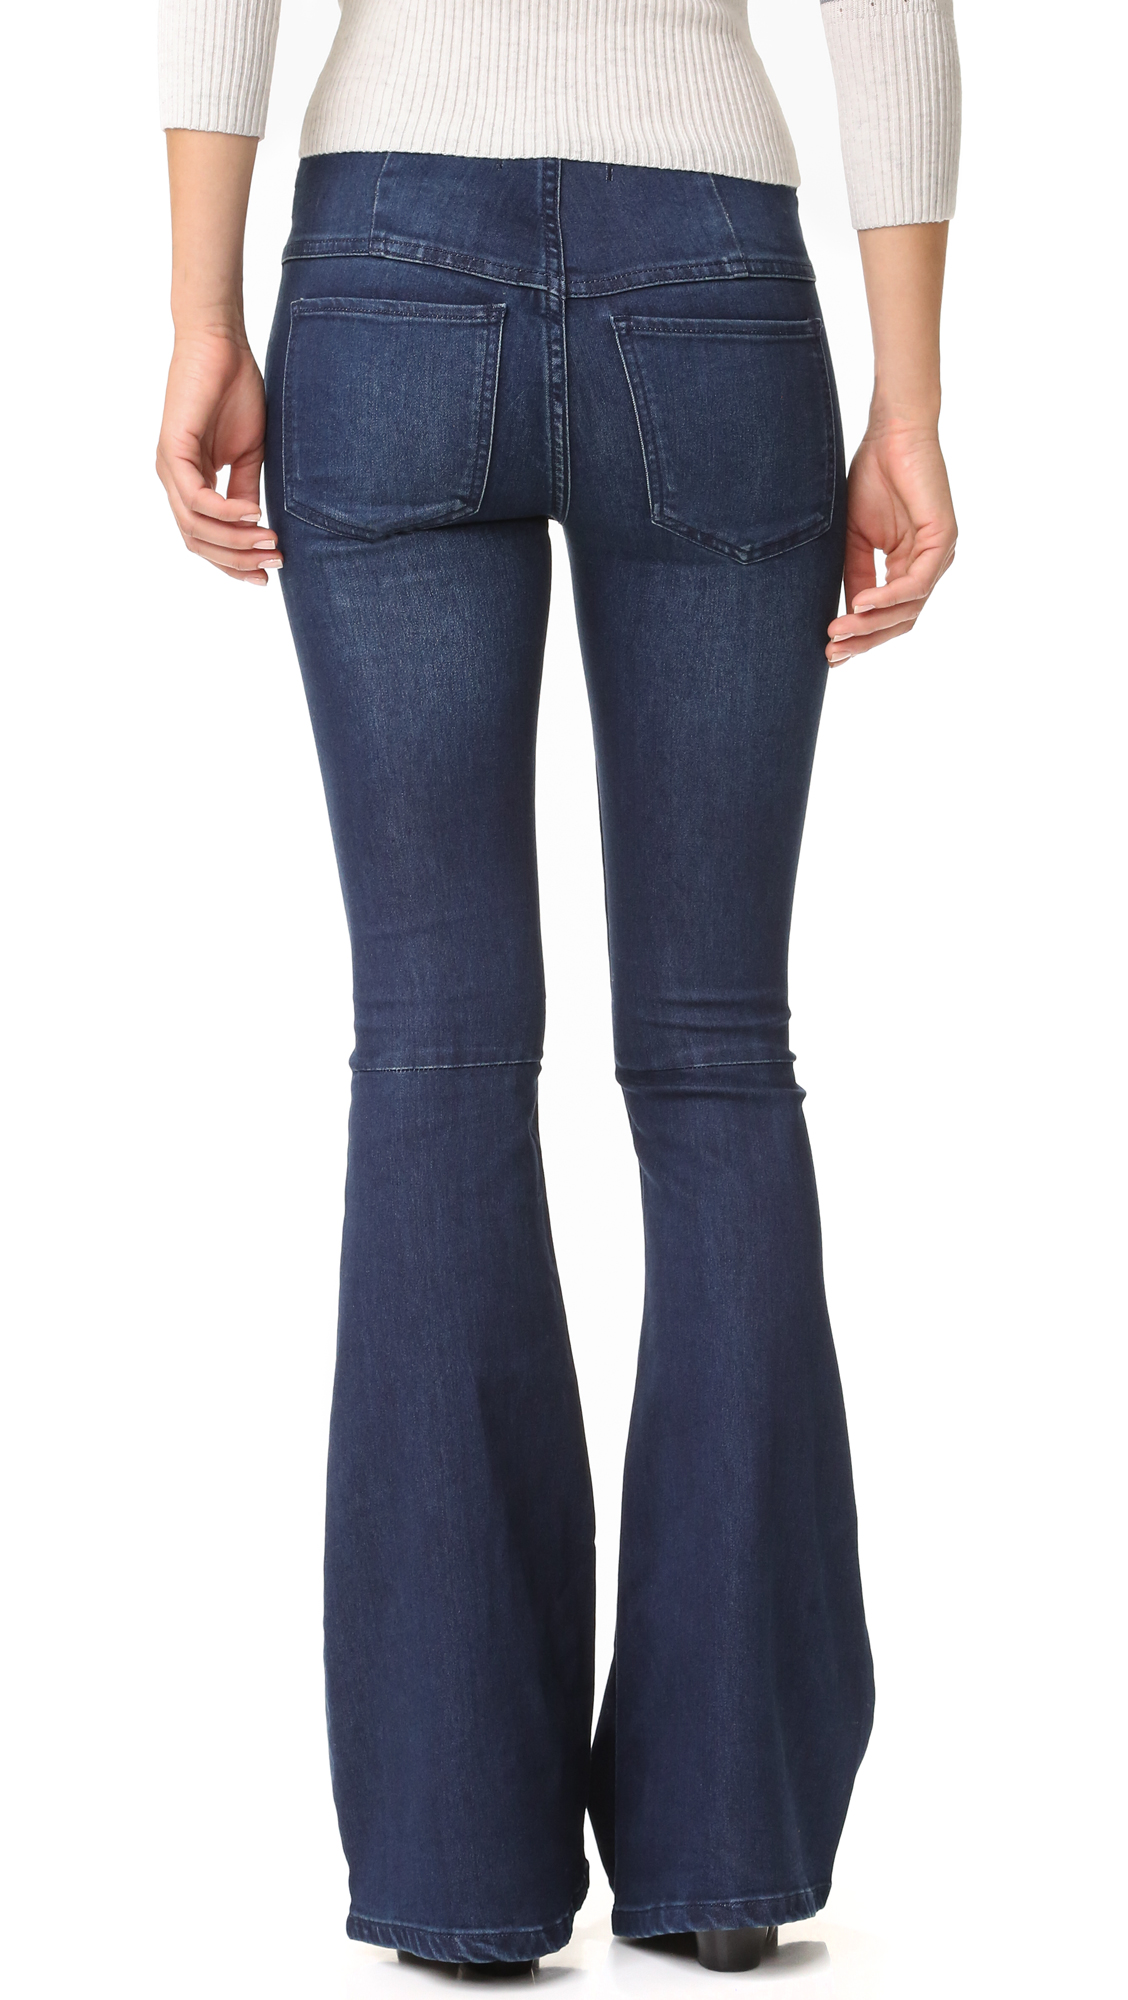 dirt cheap Super discount limited quantity Free People Gummy Denim Penny Pull On Flares   SHOPBOP